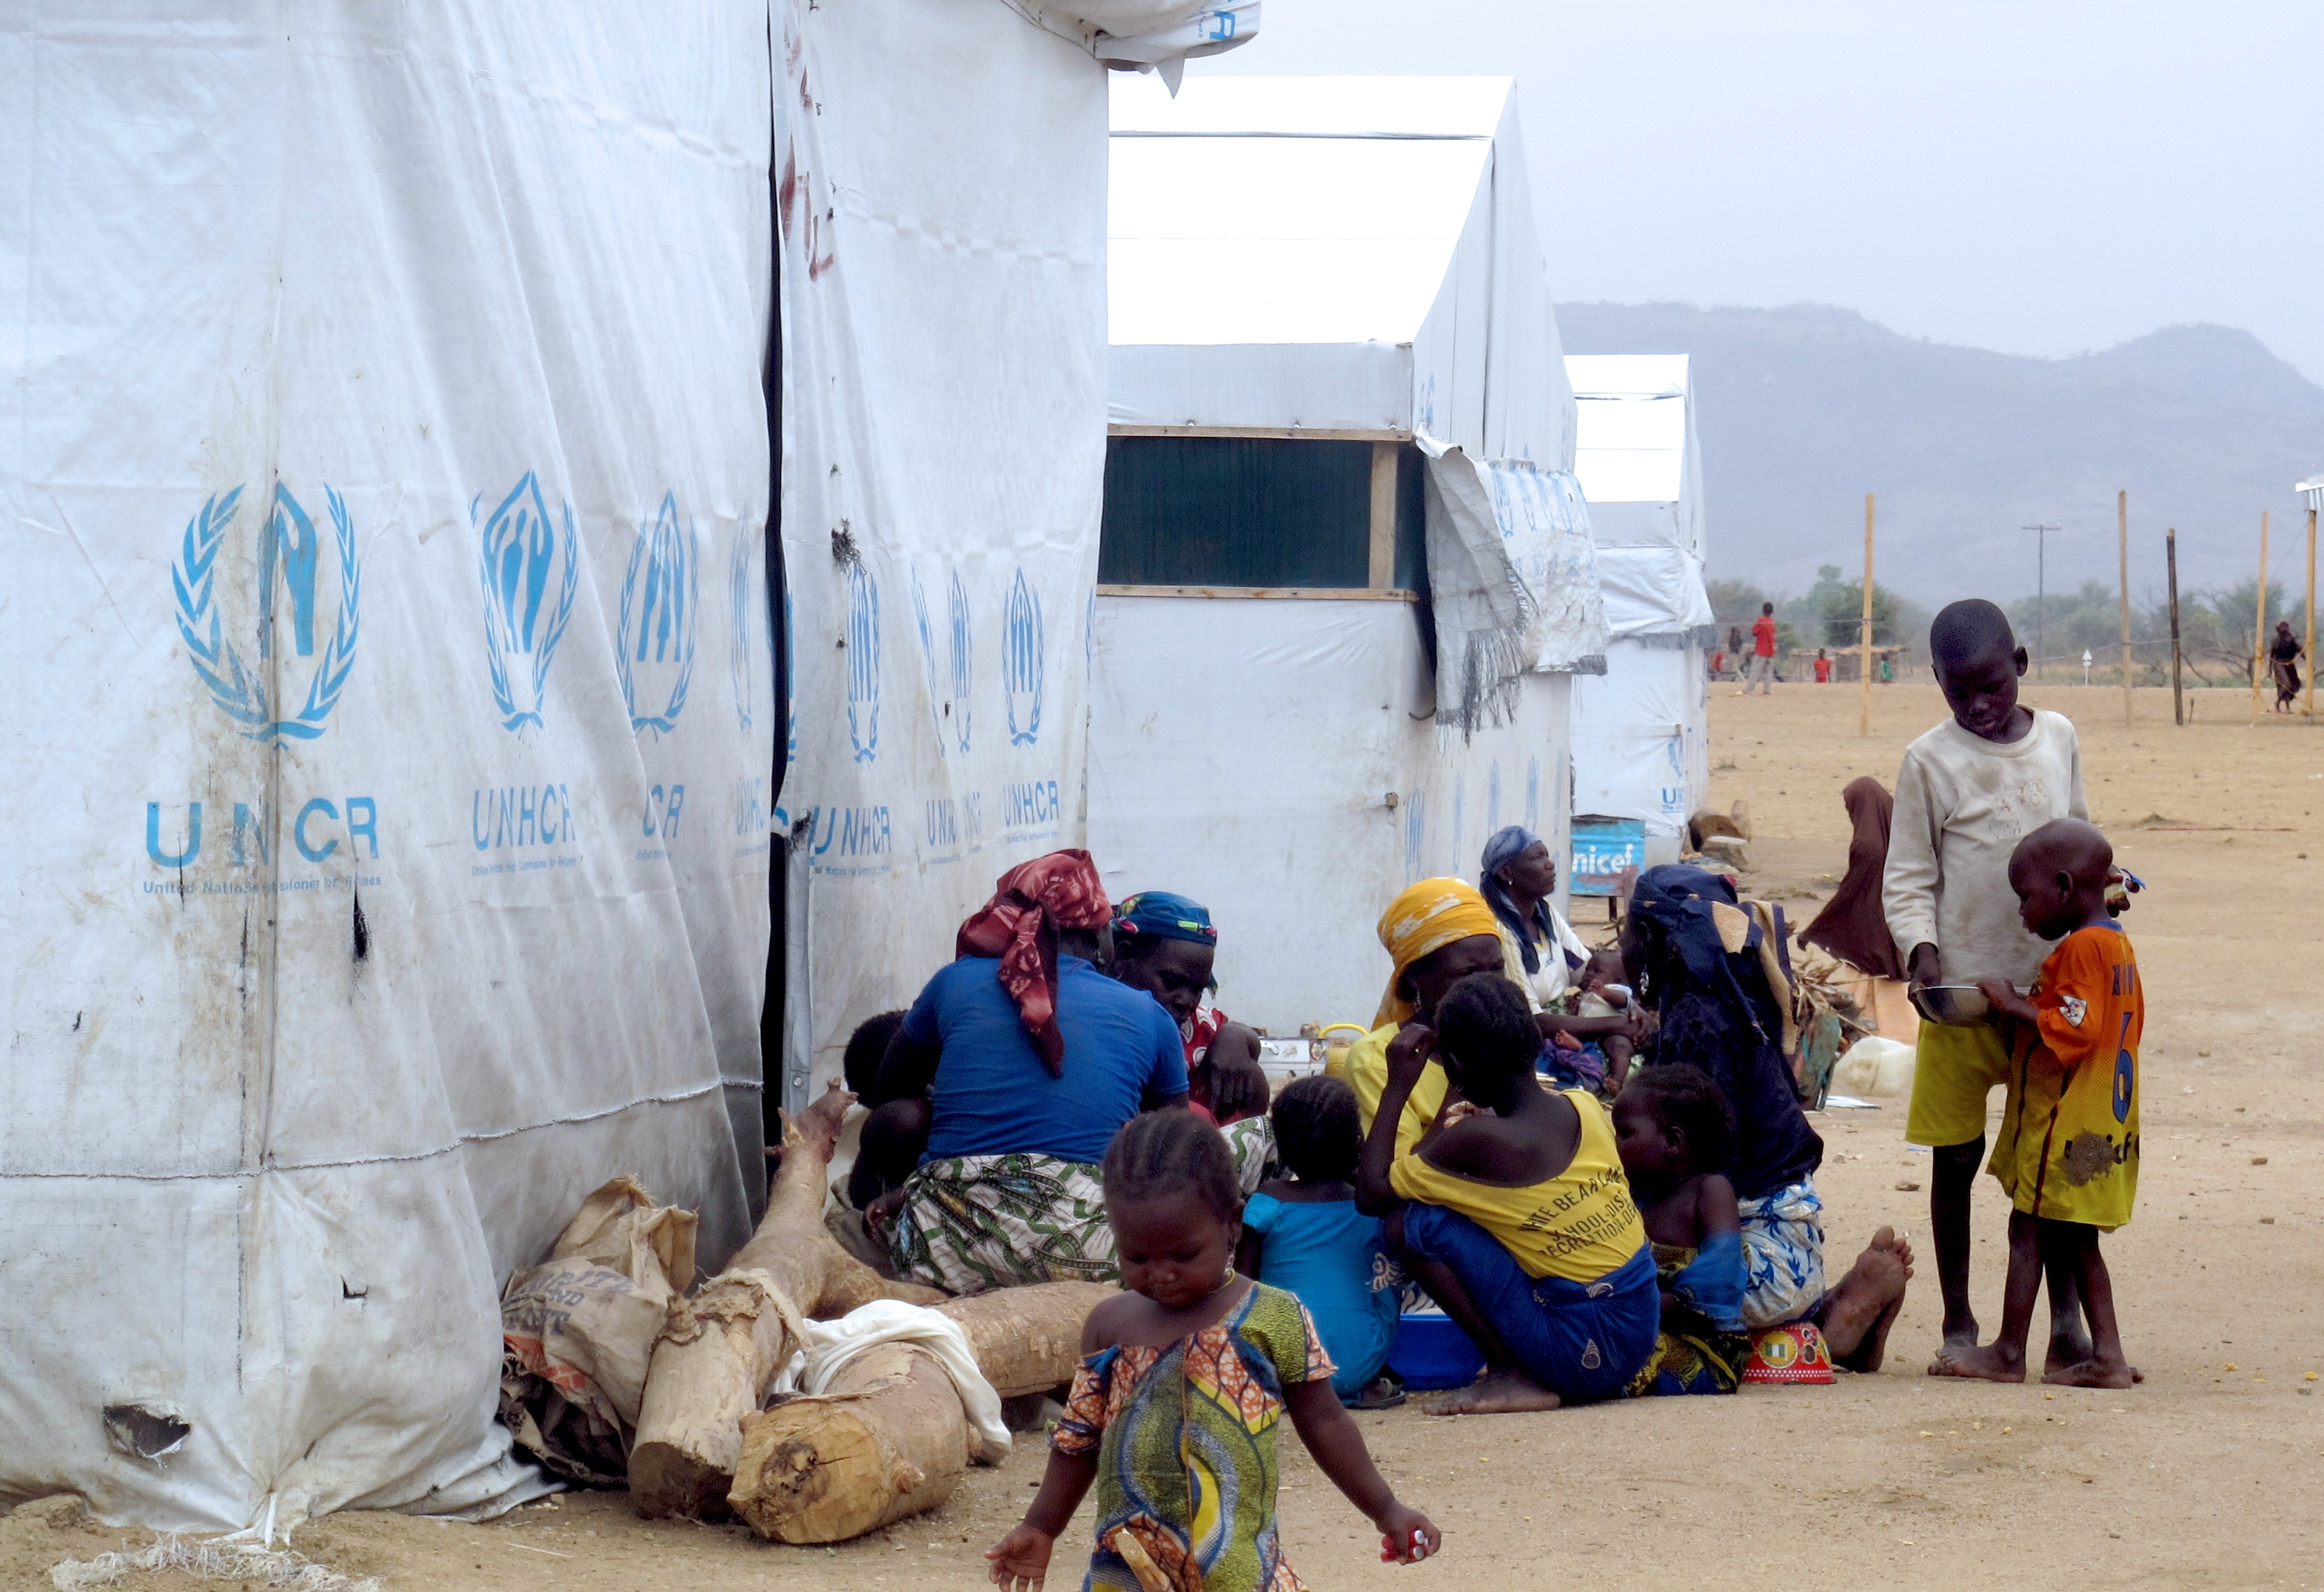 In Cameroon, Hundreds Trapped, Lack Access to Assistance, UN Says